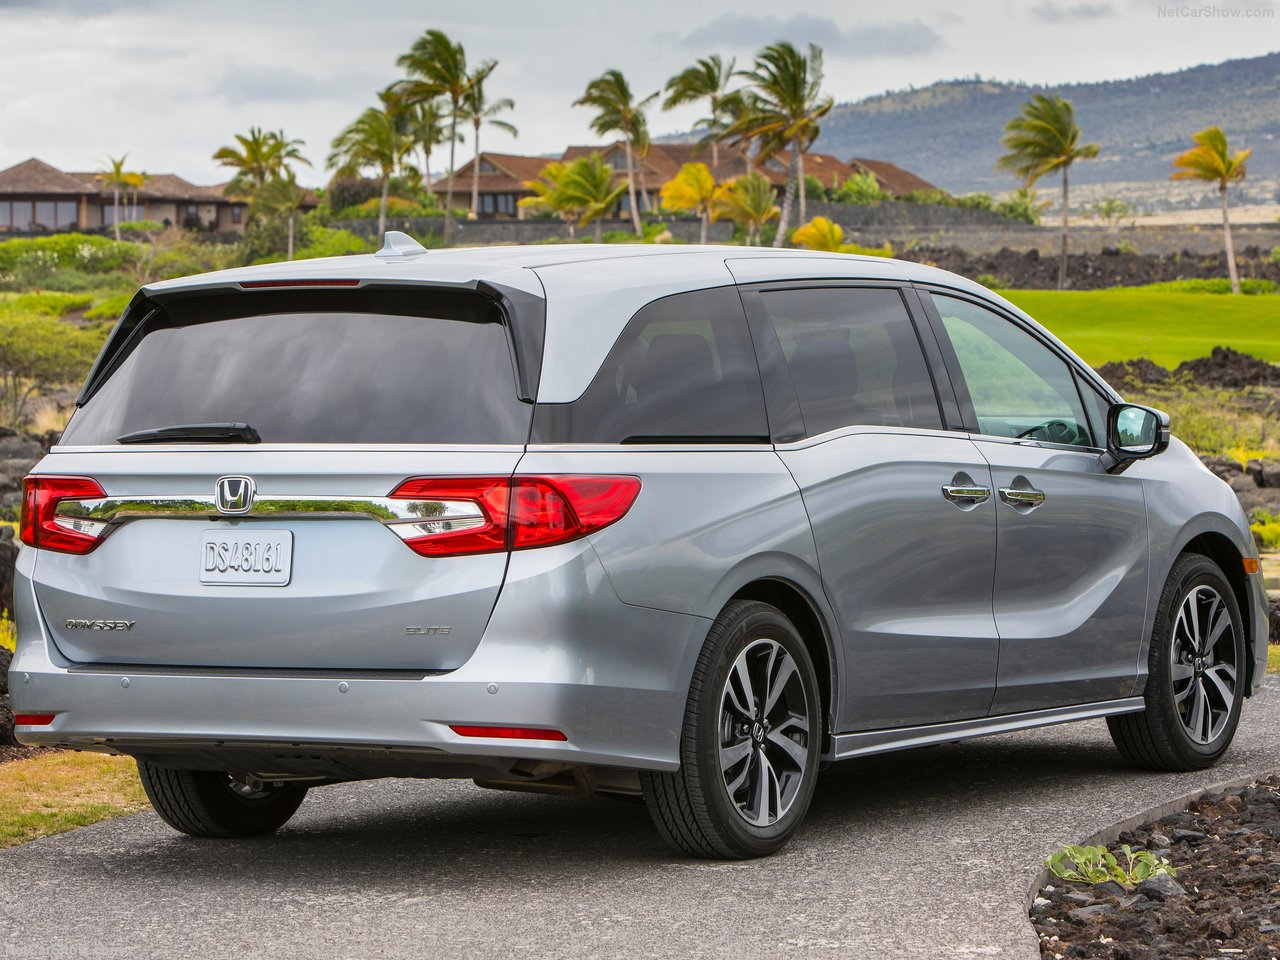 honda odyssey photos photogallery with 200 pics. Black Bedroom Furniture Sets. Home Design Ideas